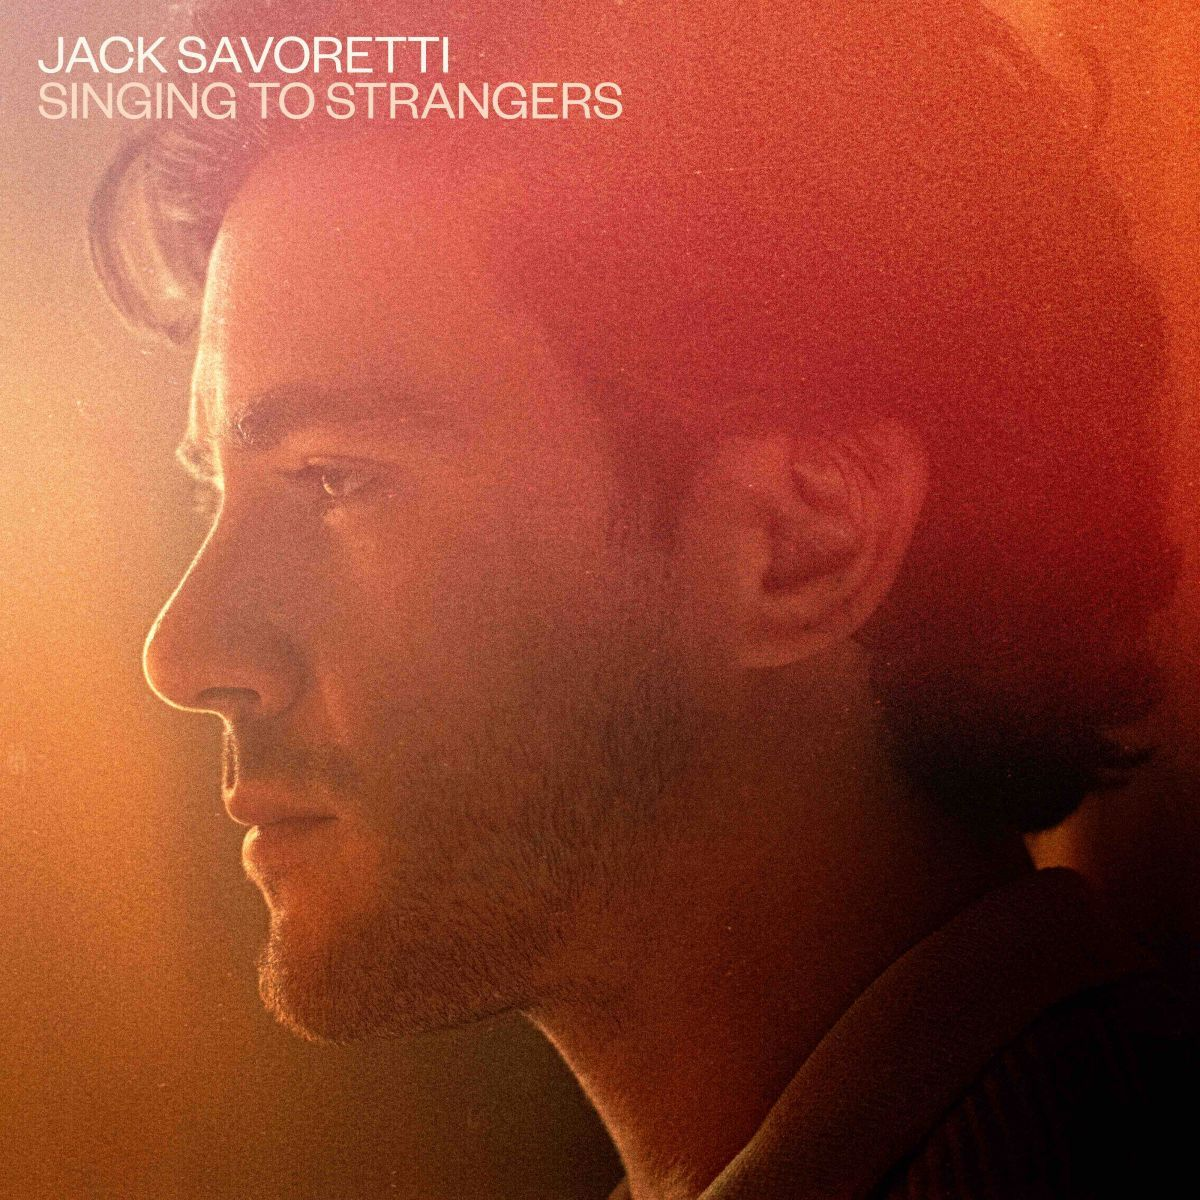 Tickets on sale tomorrow for Jack Savoretti live at